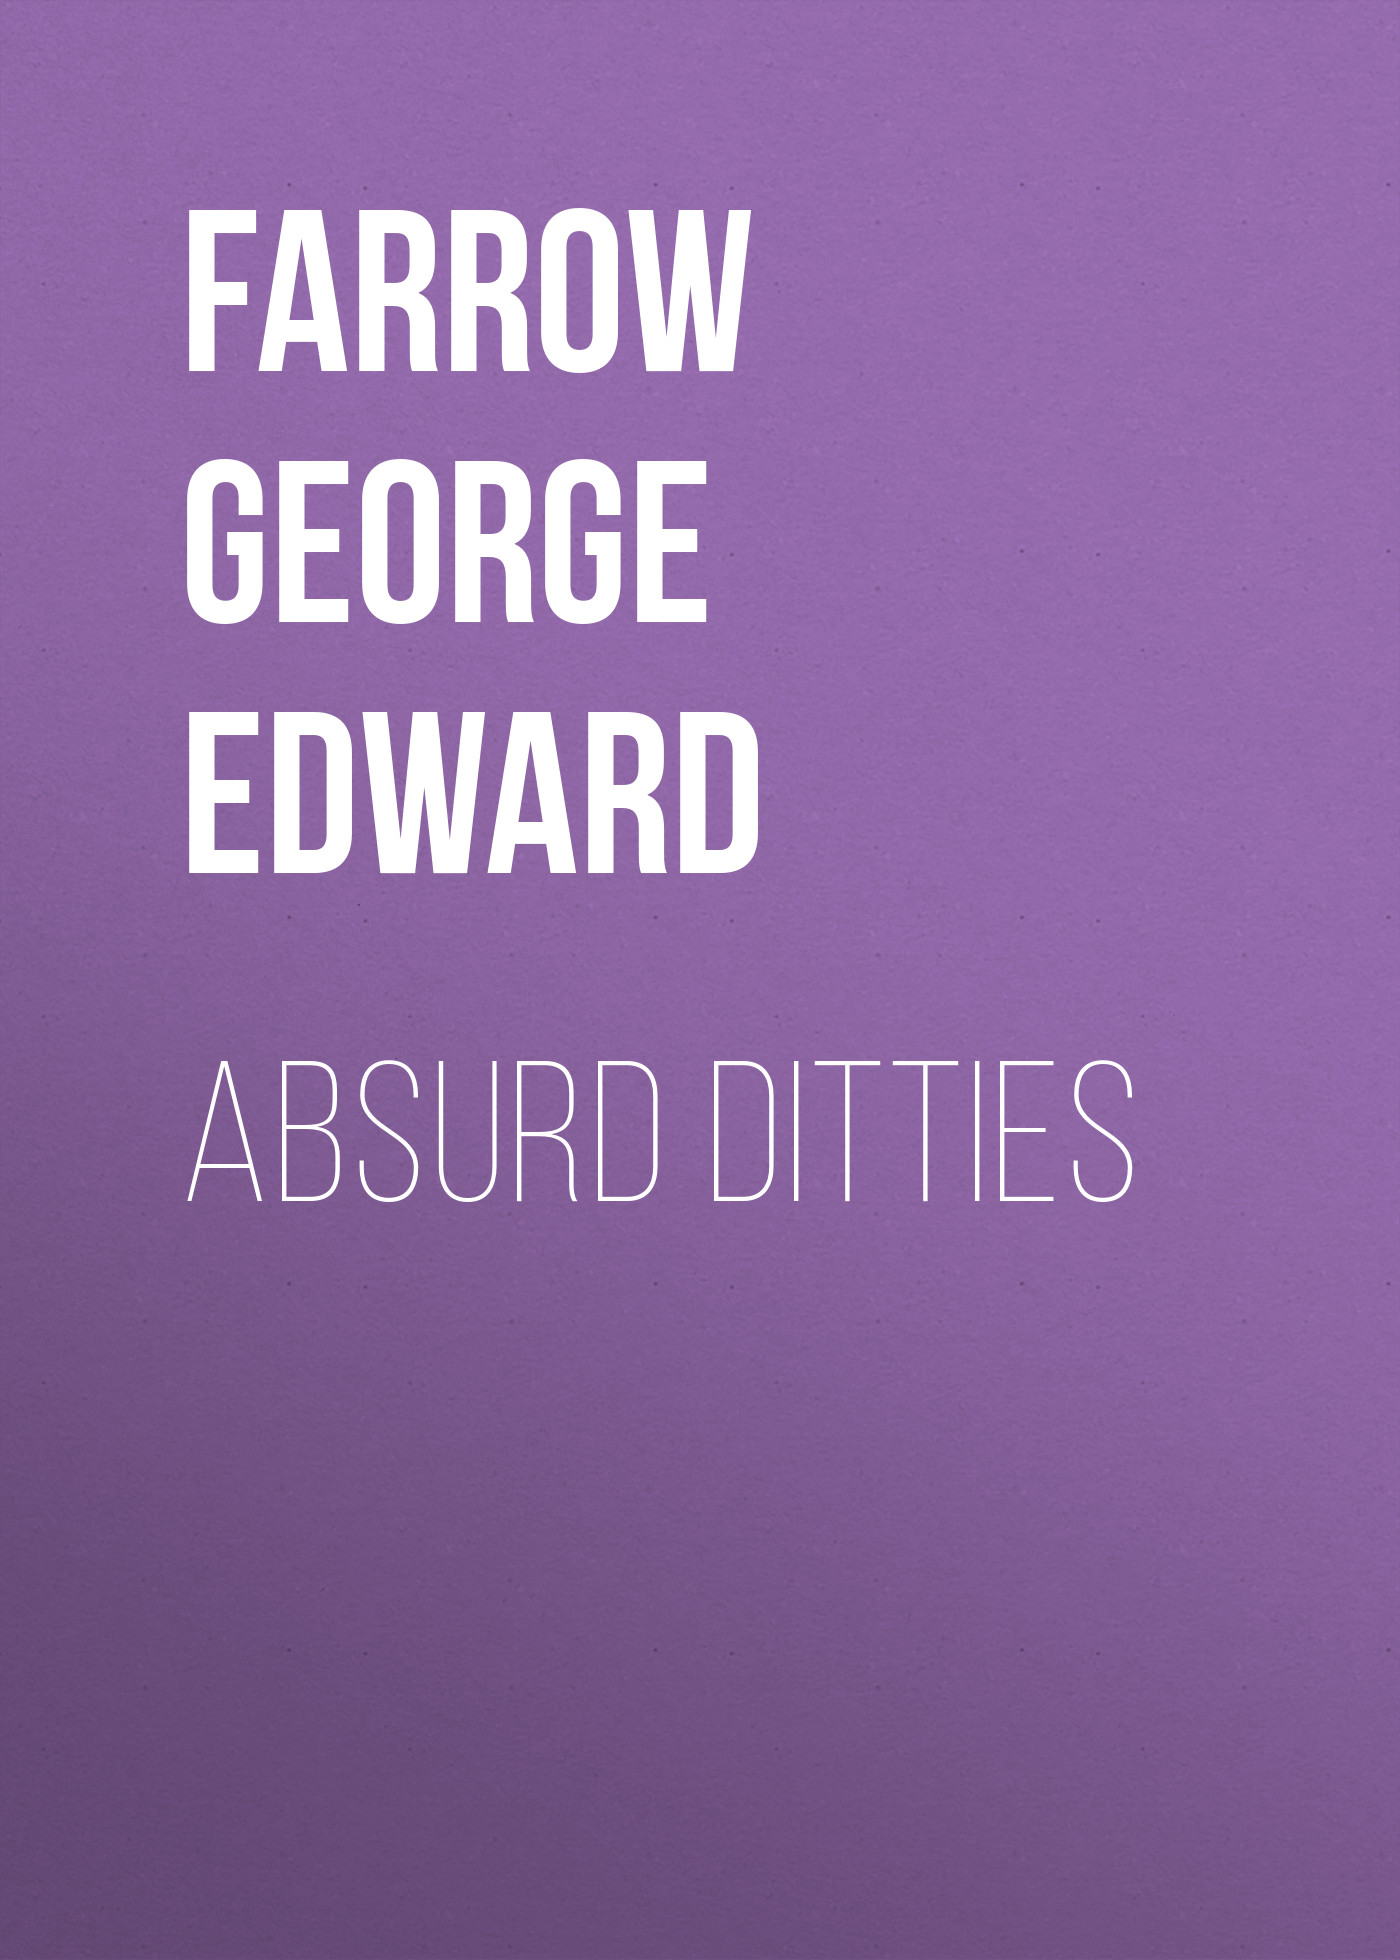 Farrow George Edward Absurd Ditties carl perkins & friends blue suede shoes a rockabilly session 30th anniversary edition cd dvd